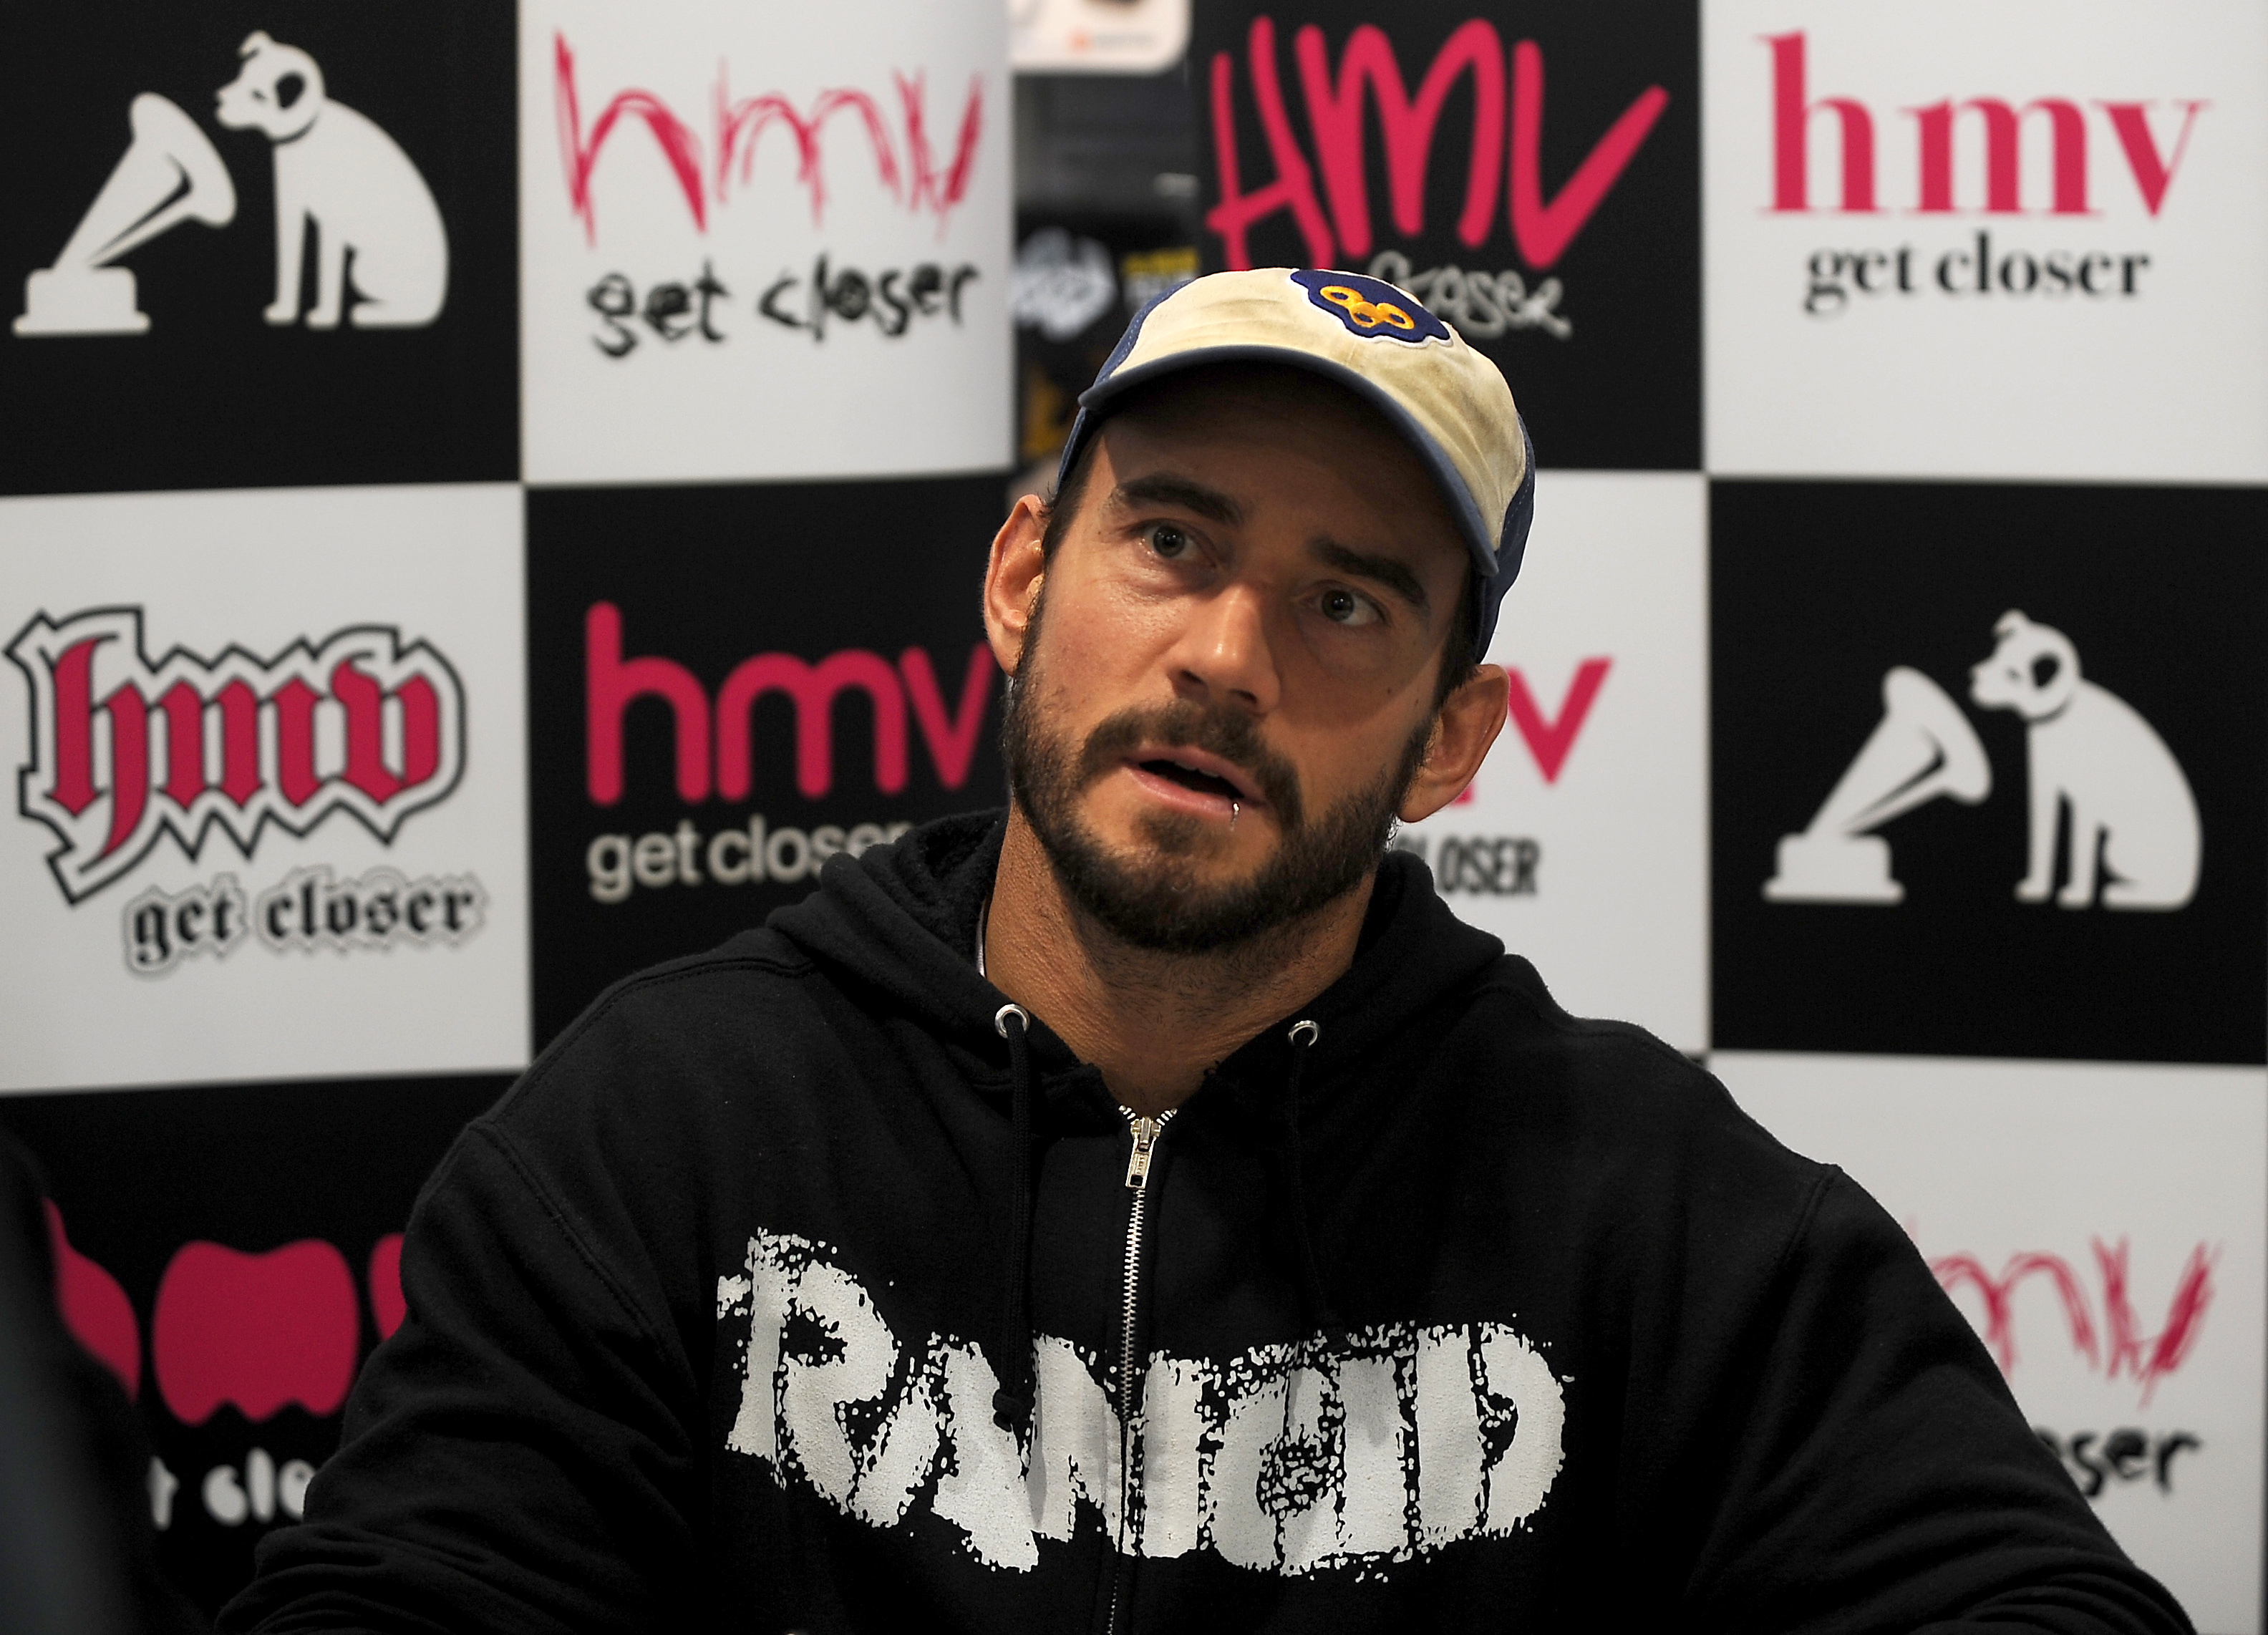 CM Punk is getting another chance in UFC